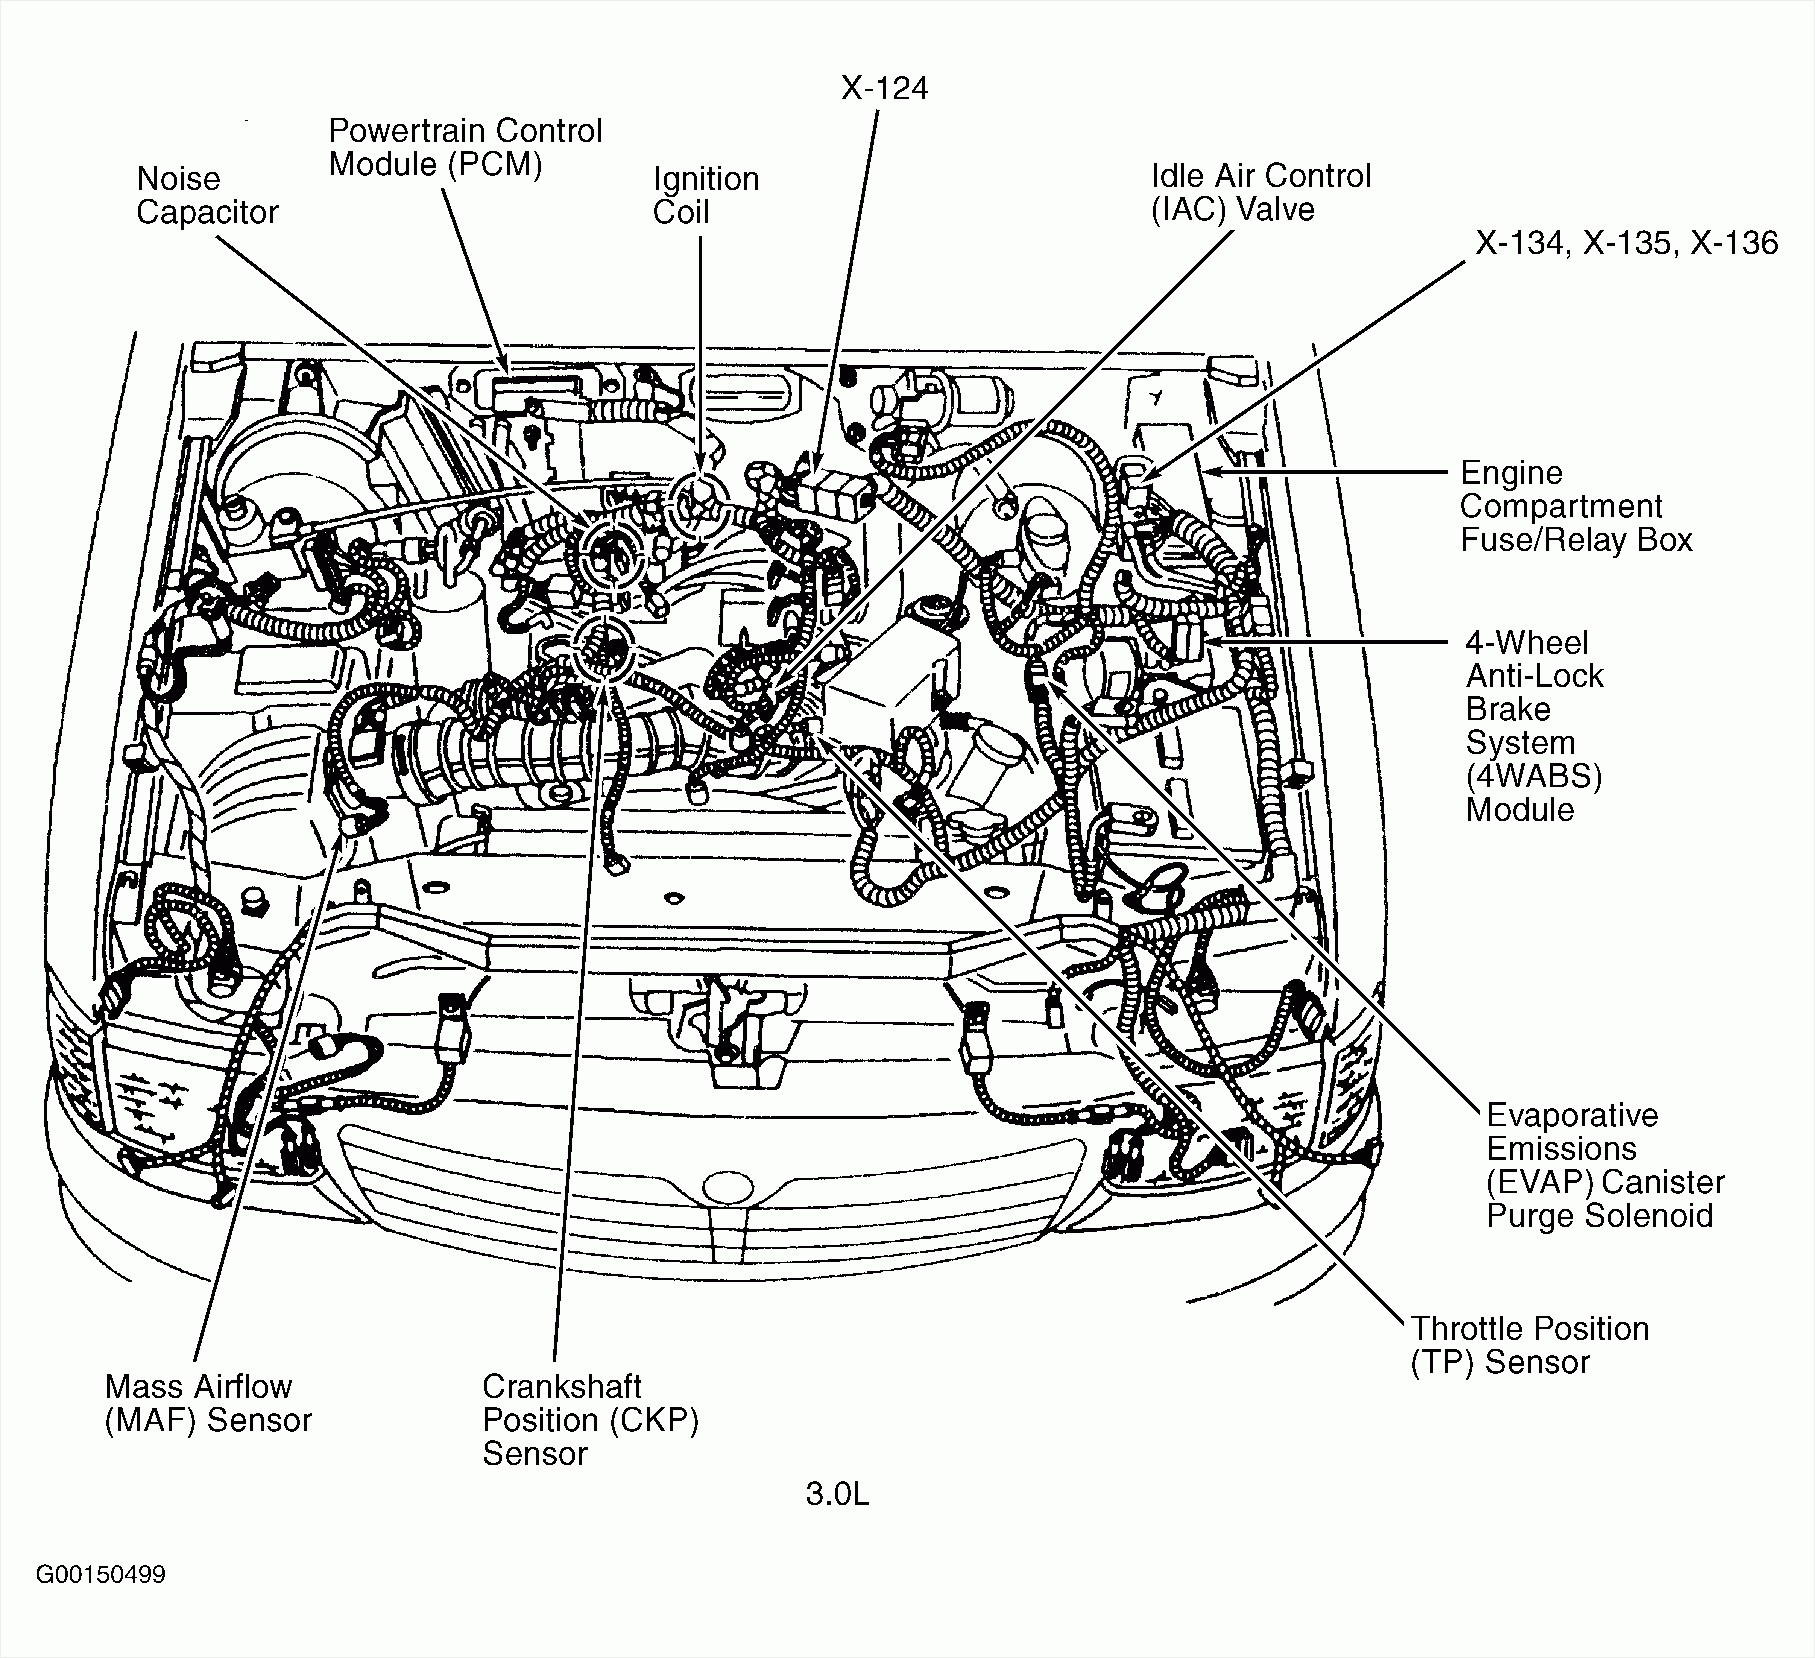 hight resolution of 1991 mustang engine diagram wiring diagram expert 1990 ford mustang engine diagram wiring diagram 1990 ford